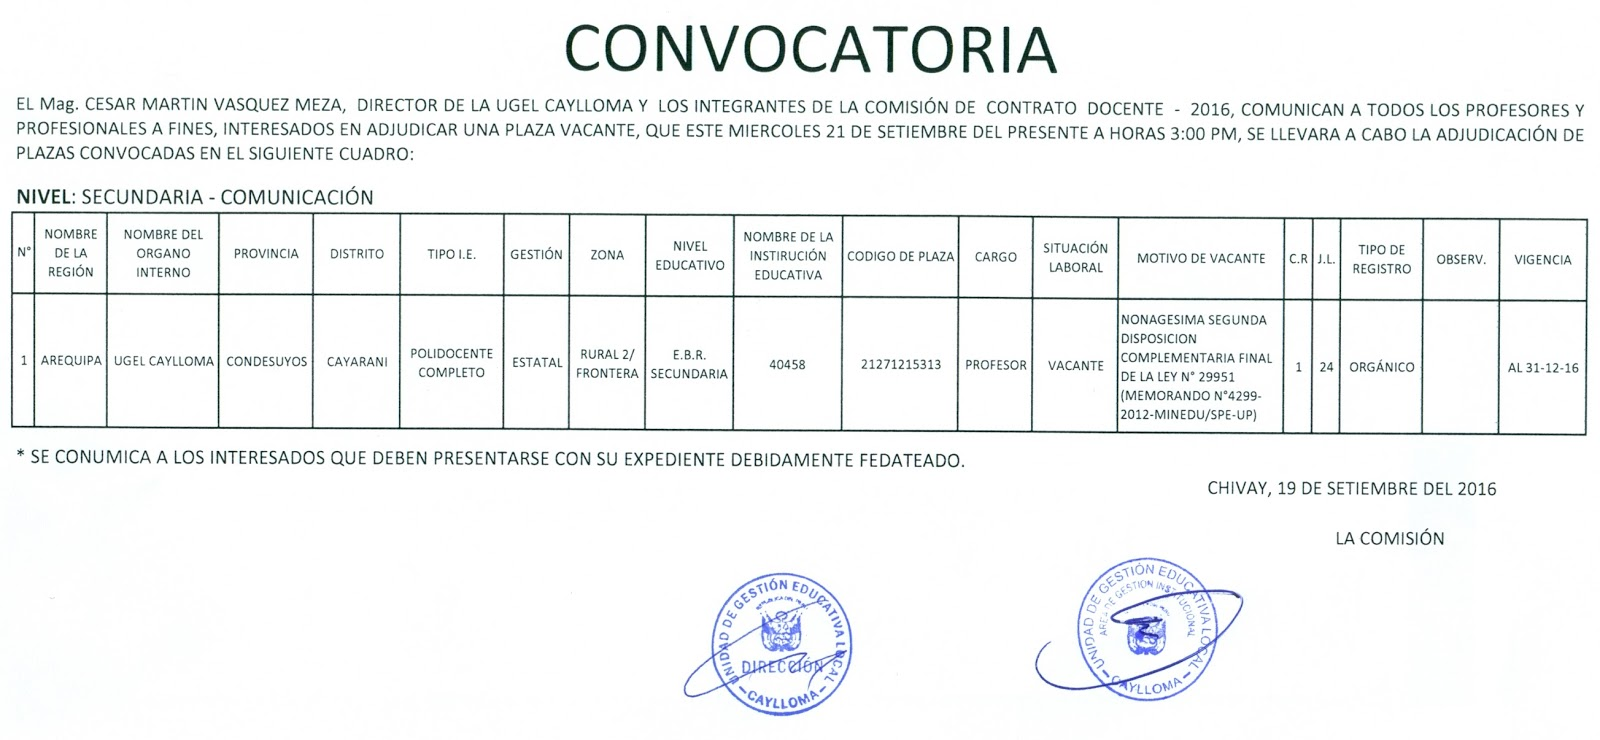 Convocatoria plaza docente ugel caylloma for Convocatoria de plazas docentes 2016